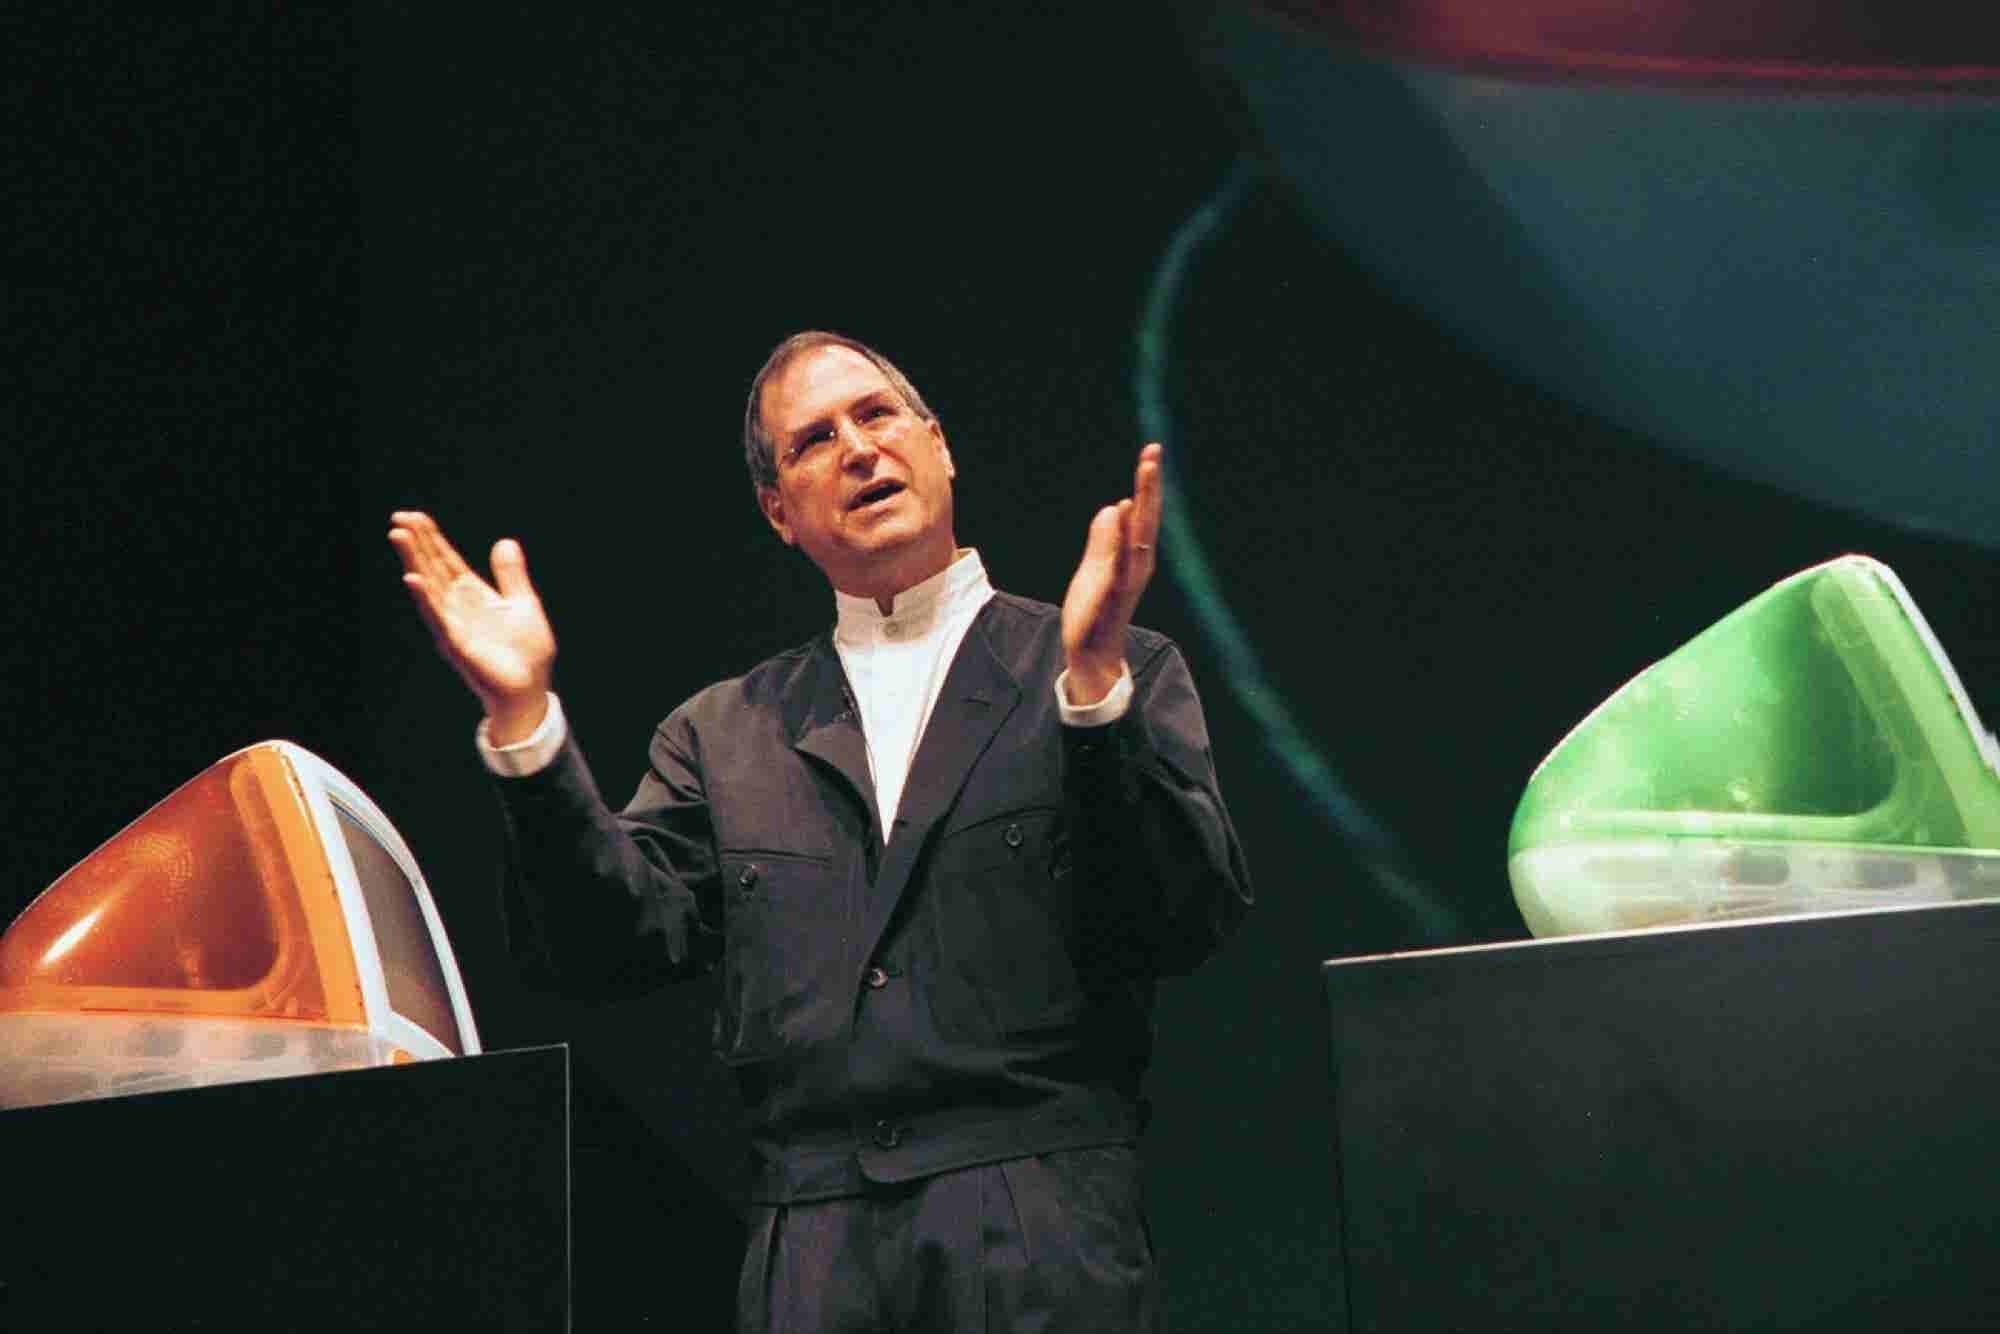 The 5 Greatest Lessons I Learned Working With Steve Jobs During the Apple Turnaround